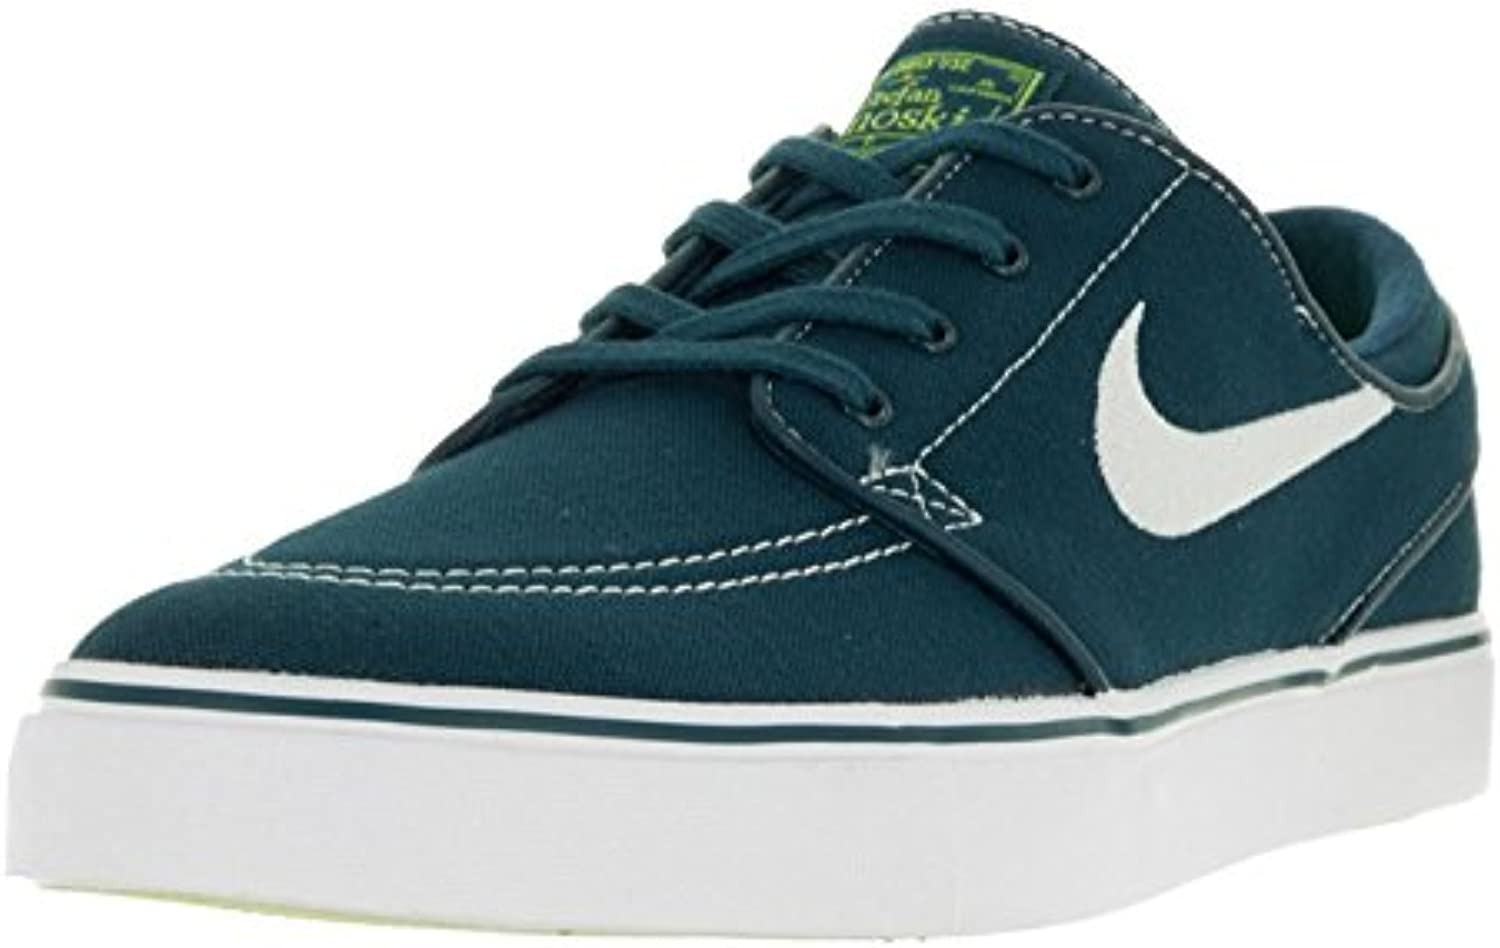 Nike Men's Stefan Janoski Canvas Skate Shoe, Midnight Turq/White/Volt/White, 42 D(M) EU/7.5 D(M) UK